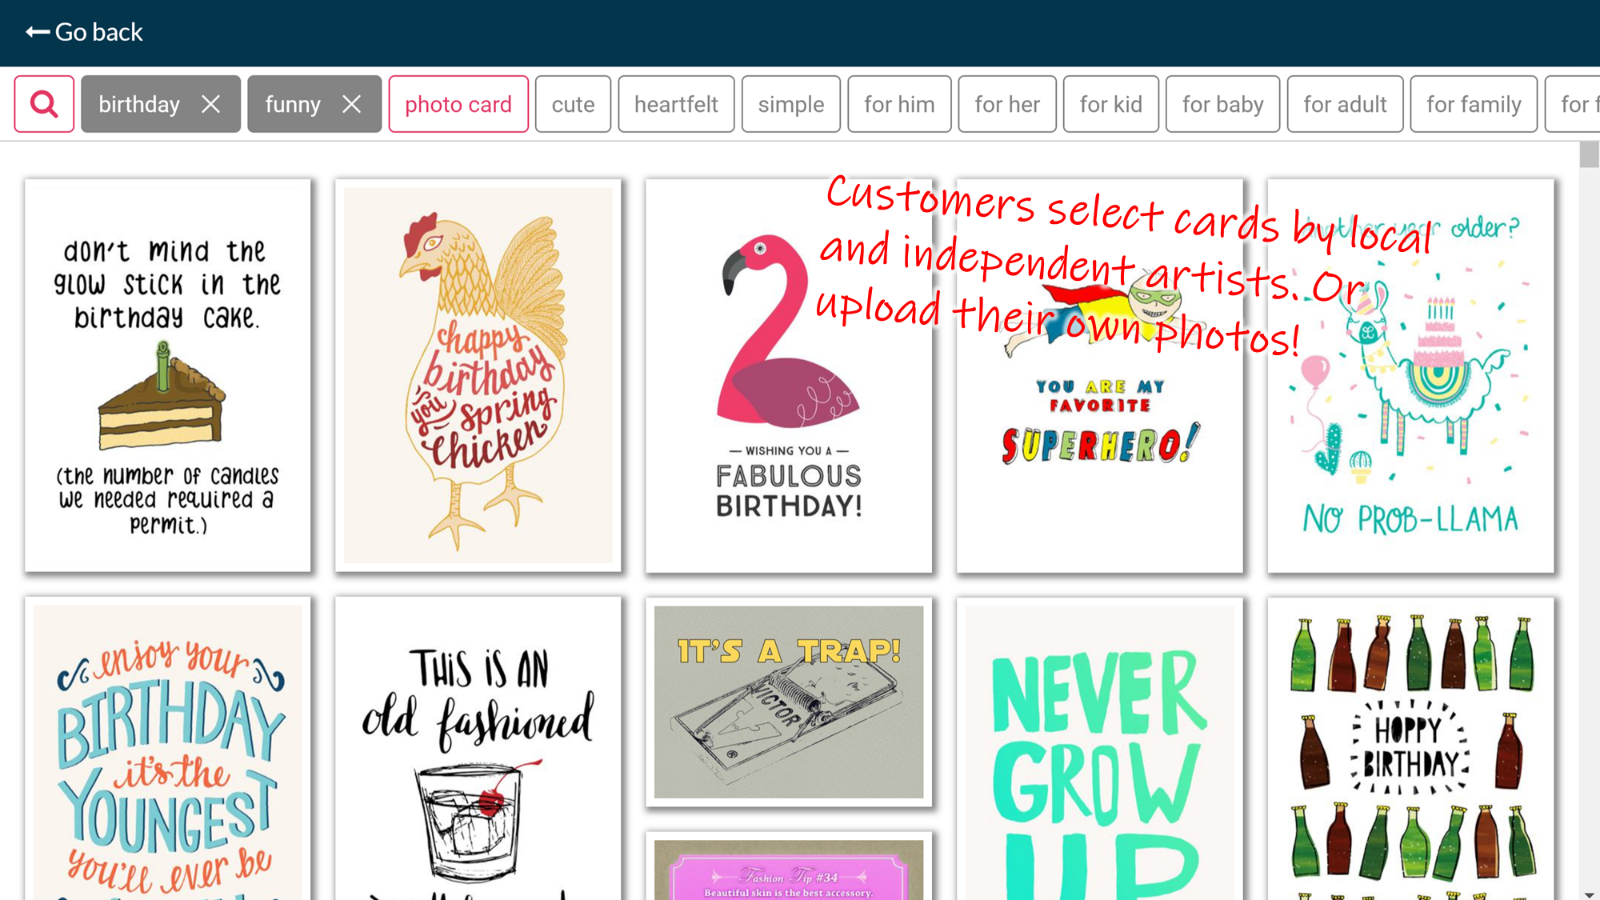 Customers select curated cards or upload their own